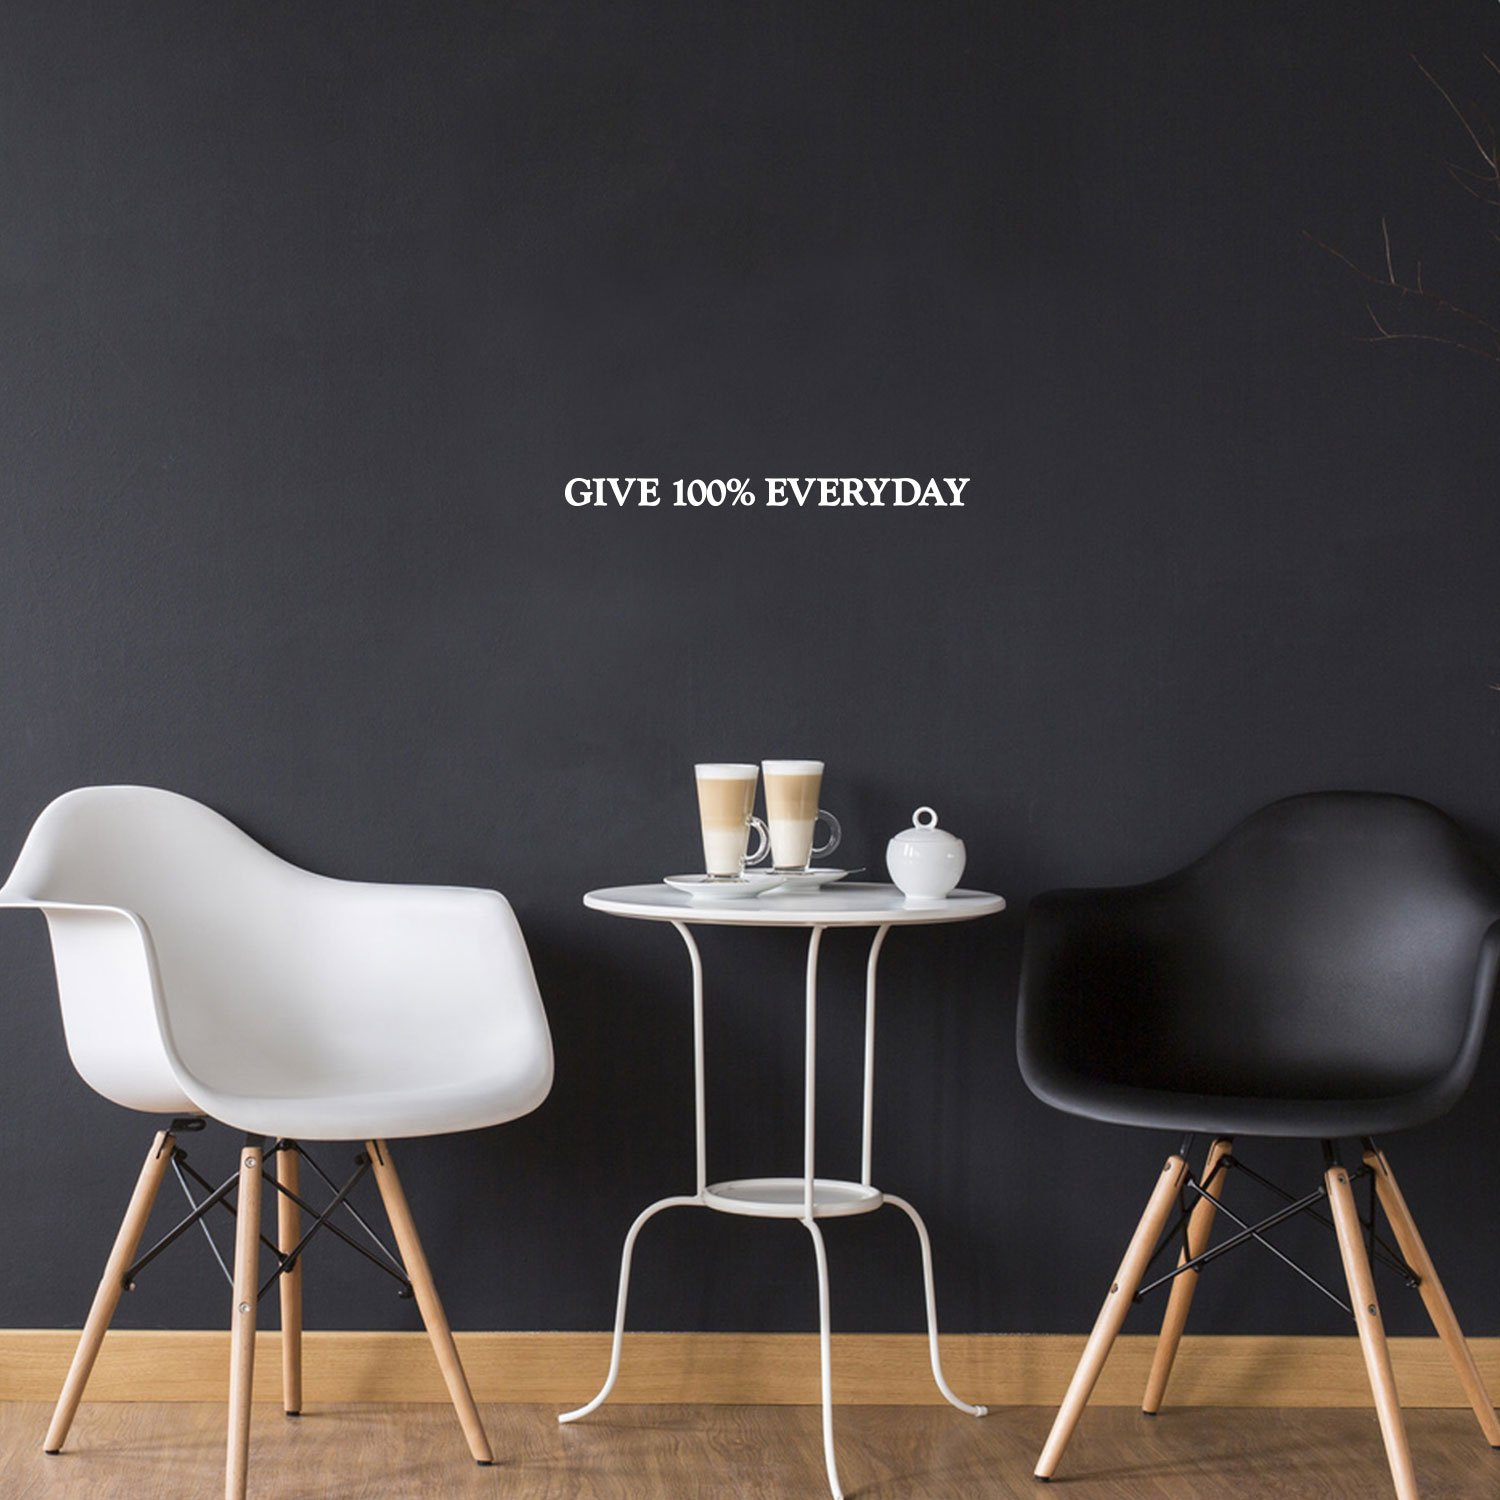 Give 100% Everyday Motivational Quote - Wall Art Decal 1'' x 10'' Decoration Vinyl Sticker - Apartment Decor - Gym Wall Vinyl Sticker - Office Wall Decoration (1'' x 10'', White)